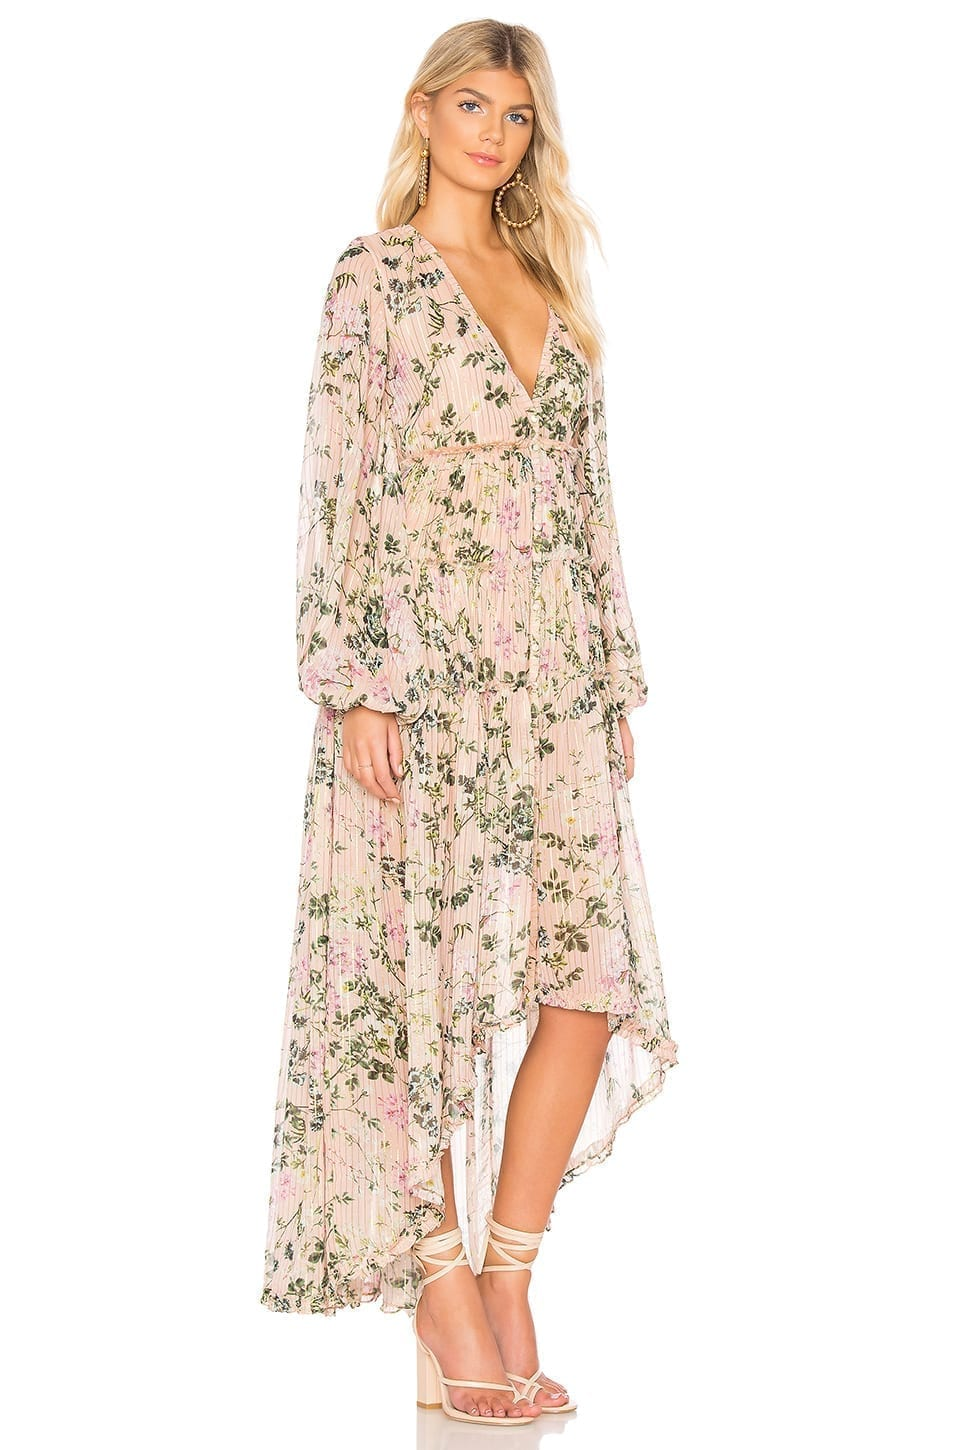 Rococo Sand X Revolve Flora Maxi Dress We Select Dresses Shop the best women's designer dresses from high end, party, lace top, evening maxi, or maxi cocktail dresses! rococo sand x revolve flora maxi dress